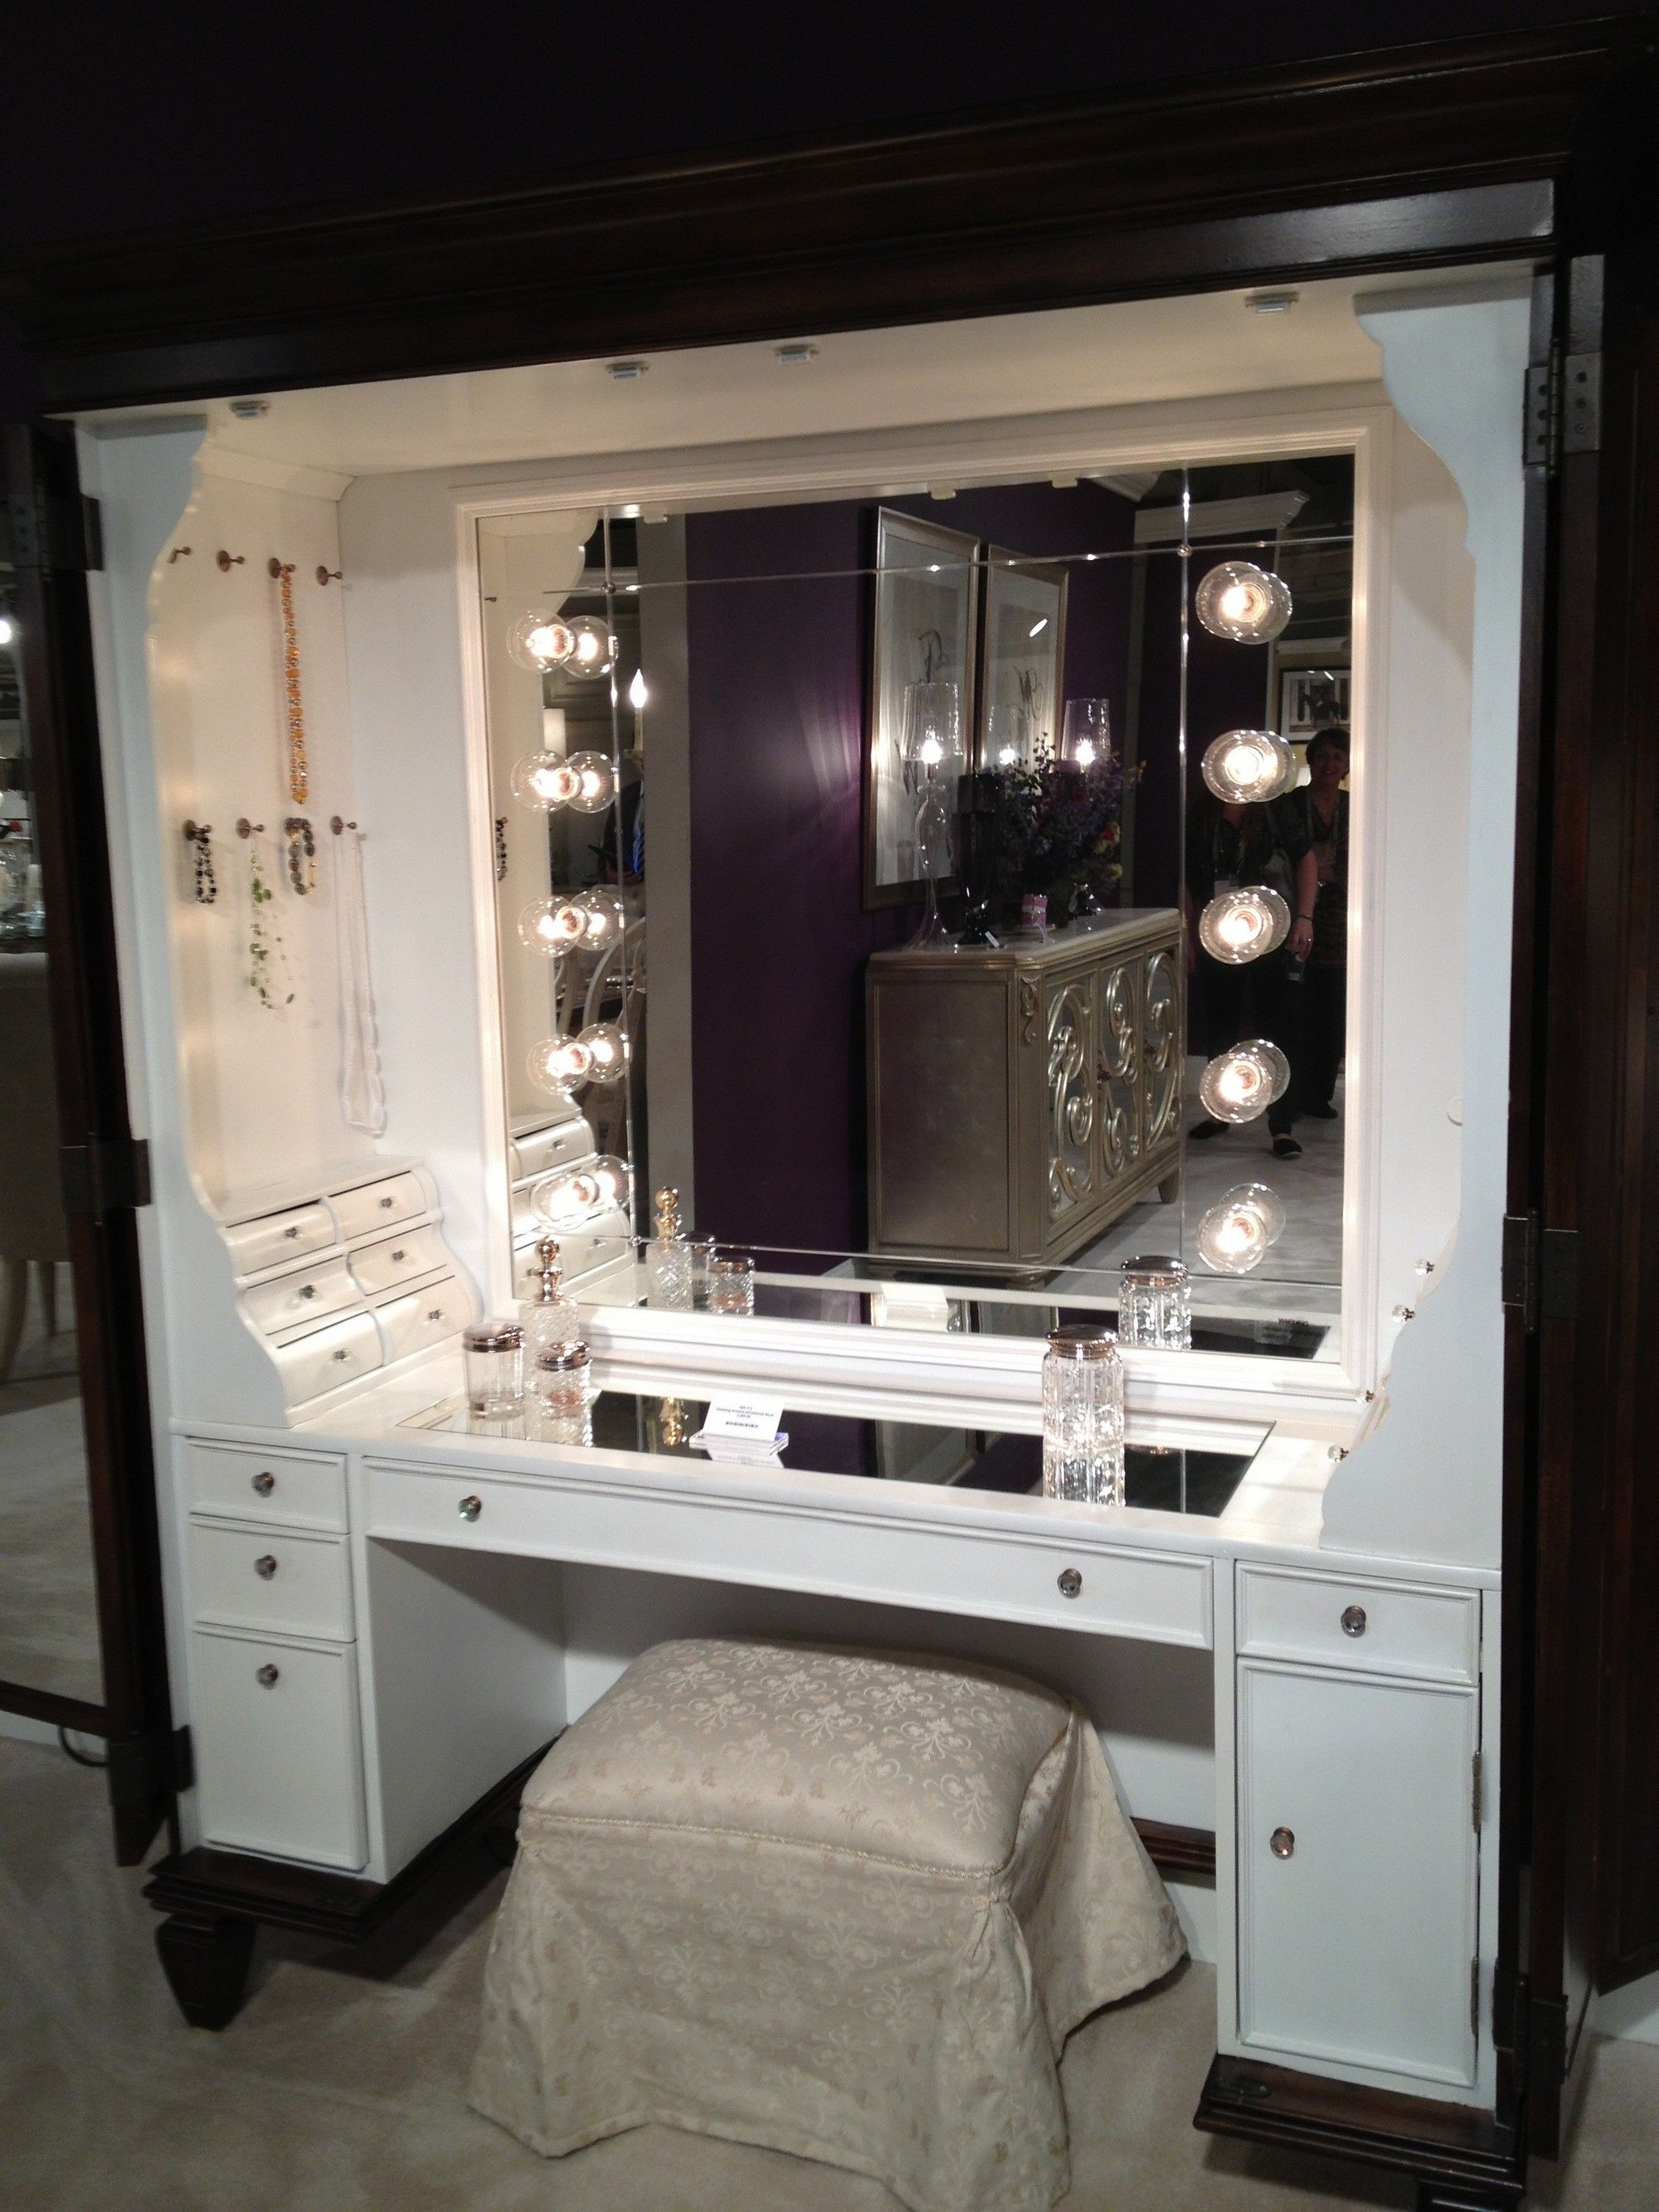 lighted vanity table with mirror and bench. Furniture  Black Makeup Table With Lighted Mirror And Small Fabric Bench Show Perfect Beauty In Maximum Way By Using Vanity With Light